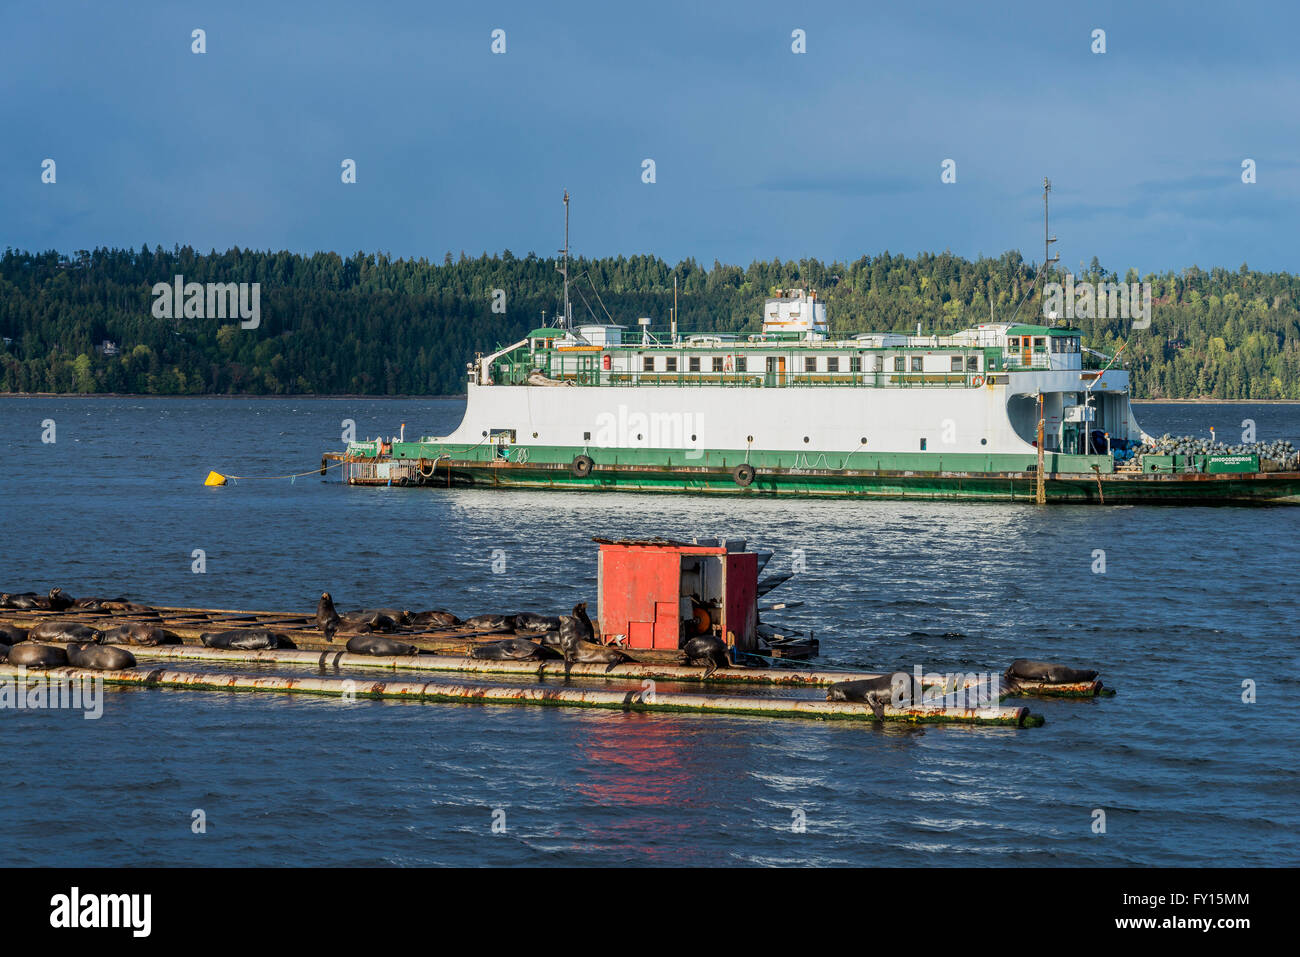 California sea lions and the former Washington State ferry MV Rhododendron, Fanny Bay, British Columbia, Canada - Stock Image